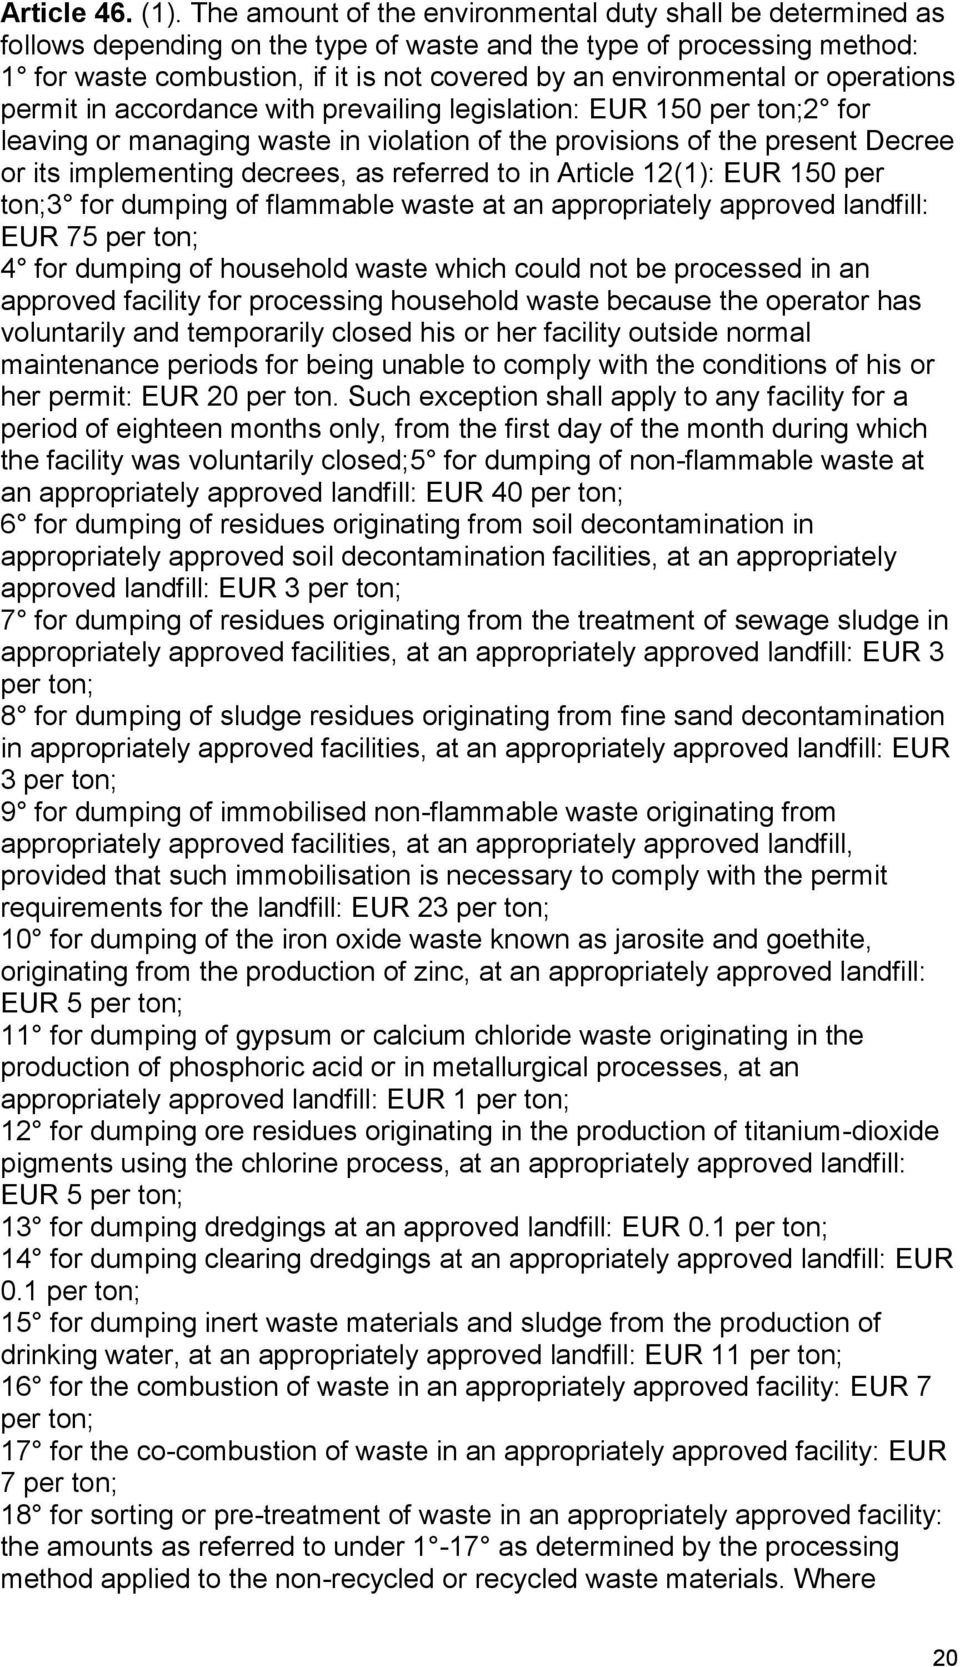 or operations permit in accordance with prevailing legislation: EUR 150 per ton;2 for leaving or managing waste in violation of the provisions of the present Decree or its implementing decrees, as